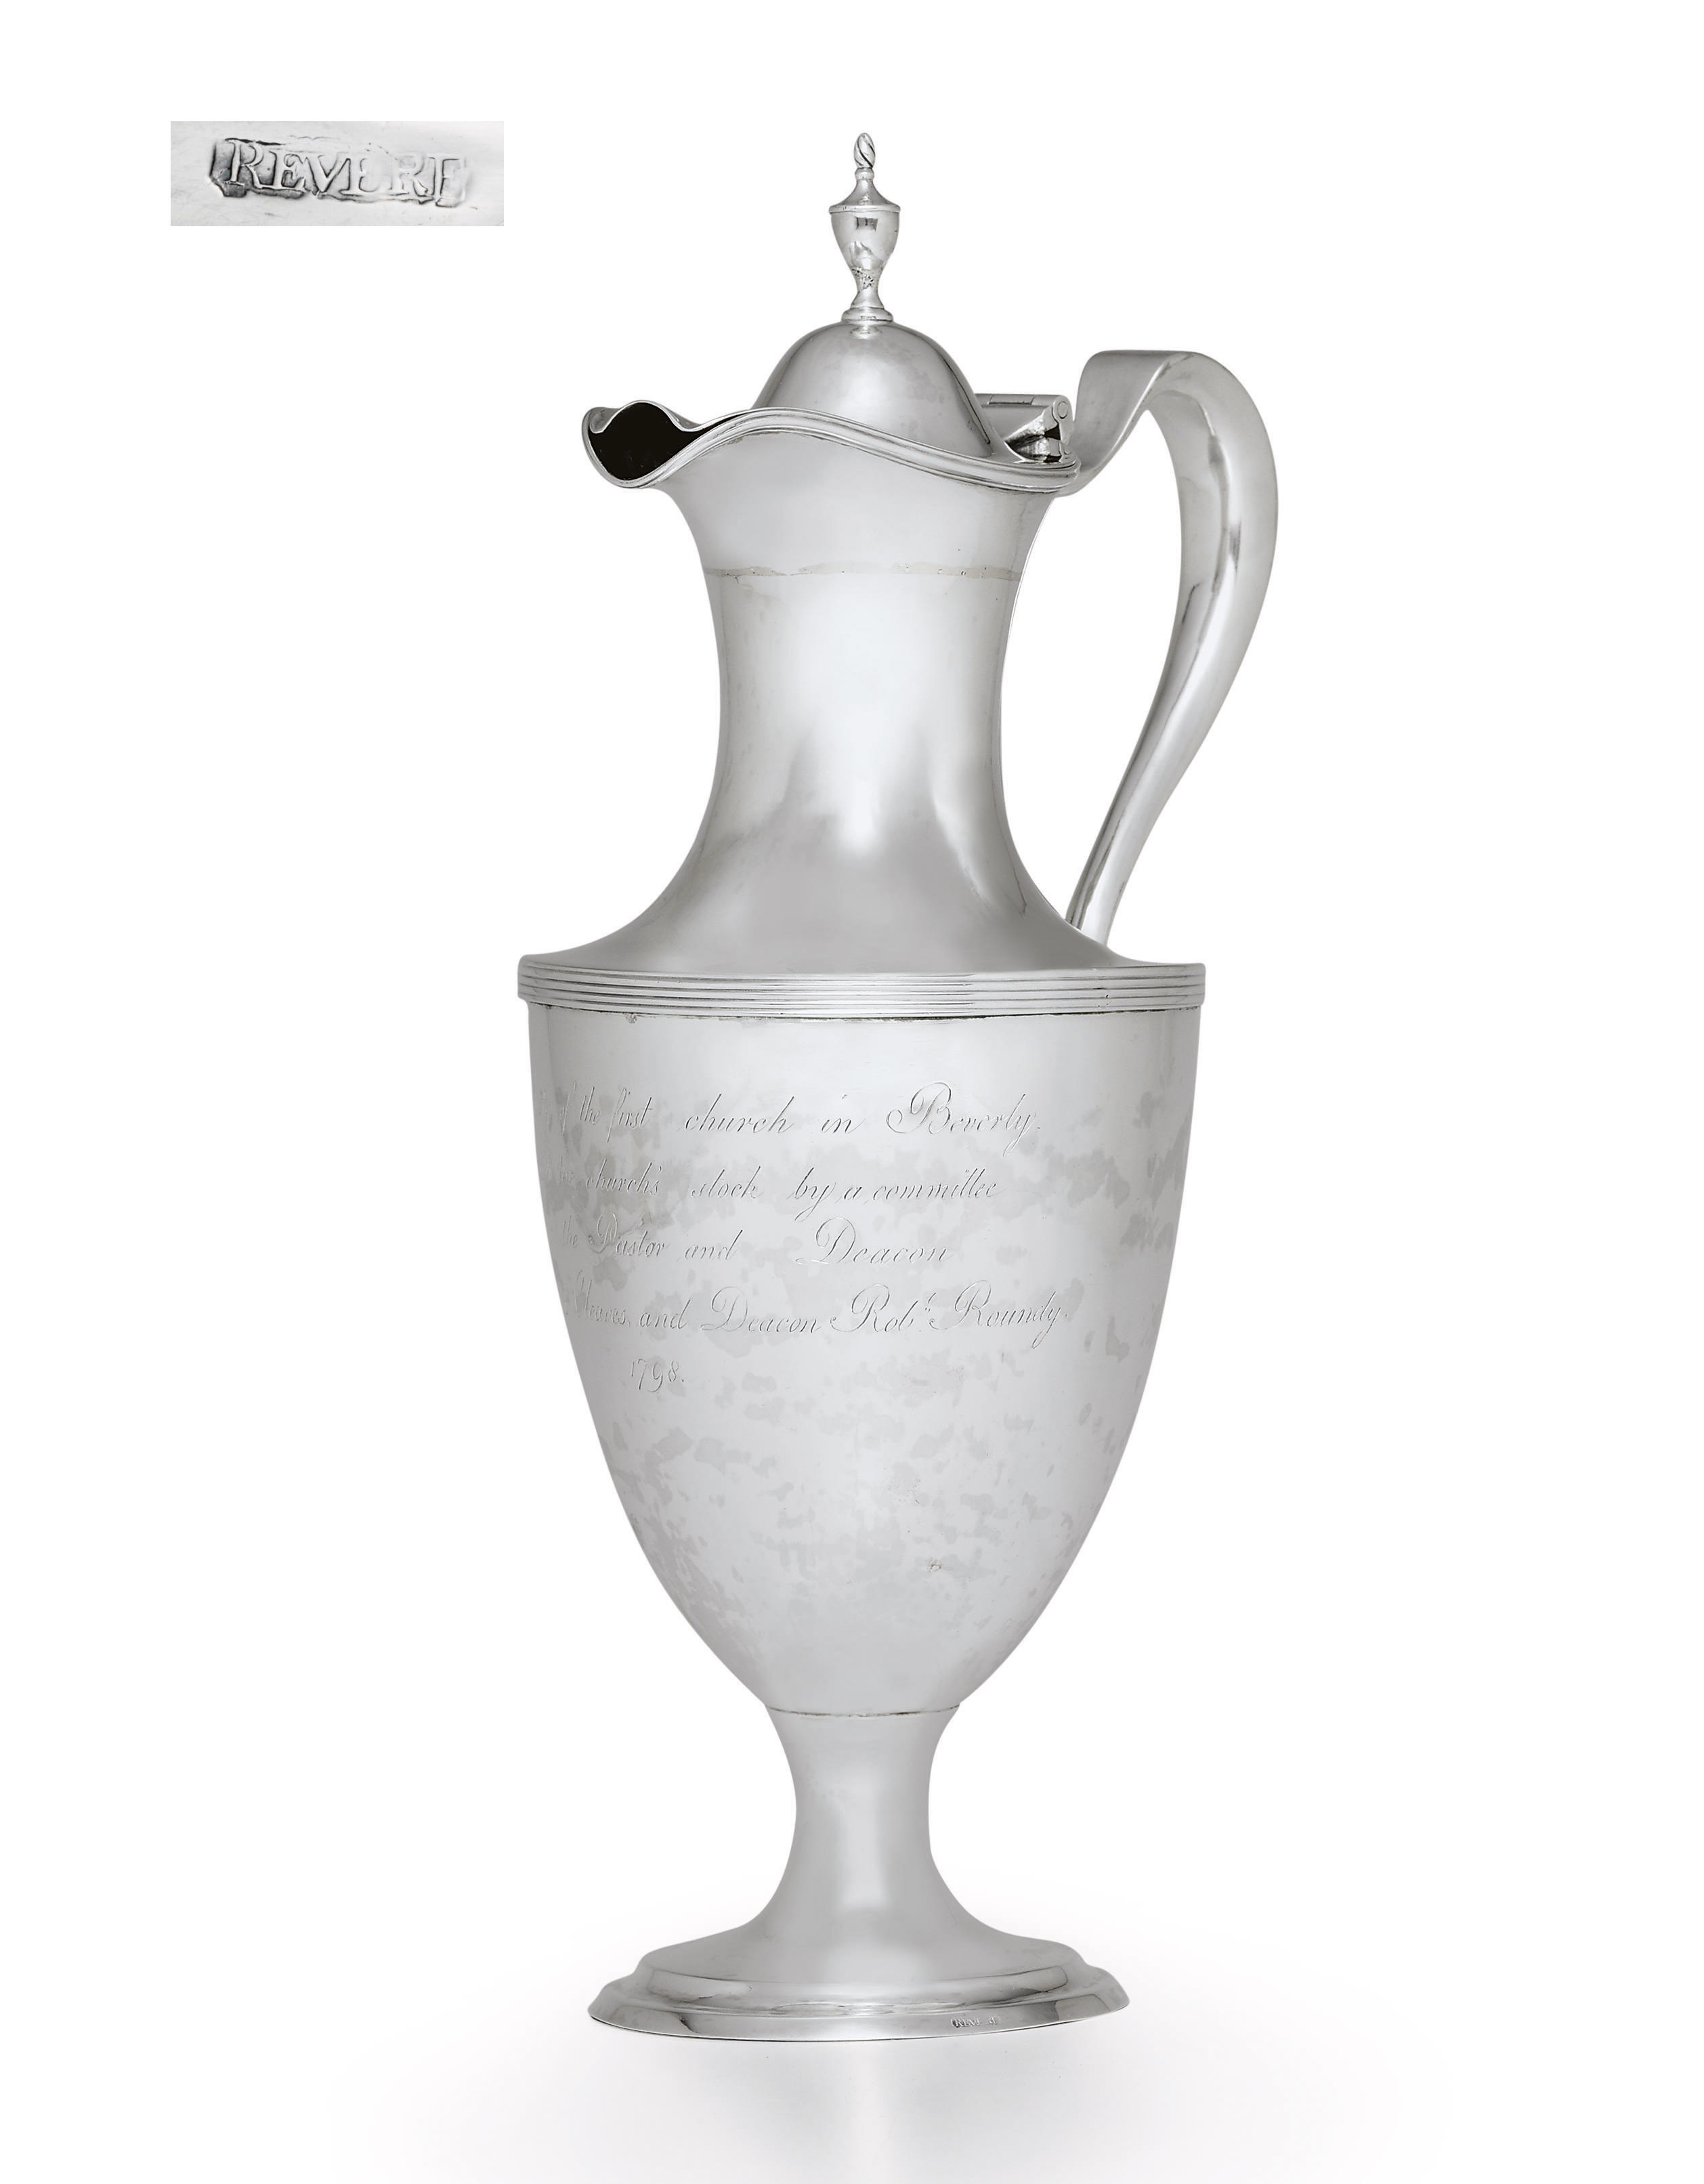 AN IMPORTANT AND MONUMENTAL SILVER EWER